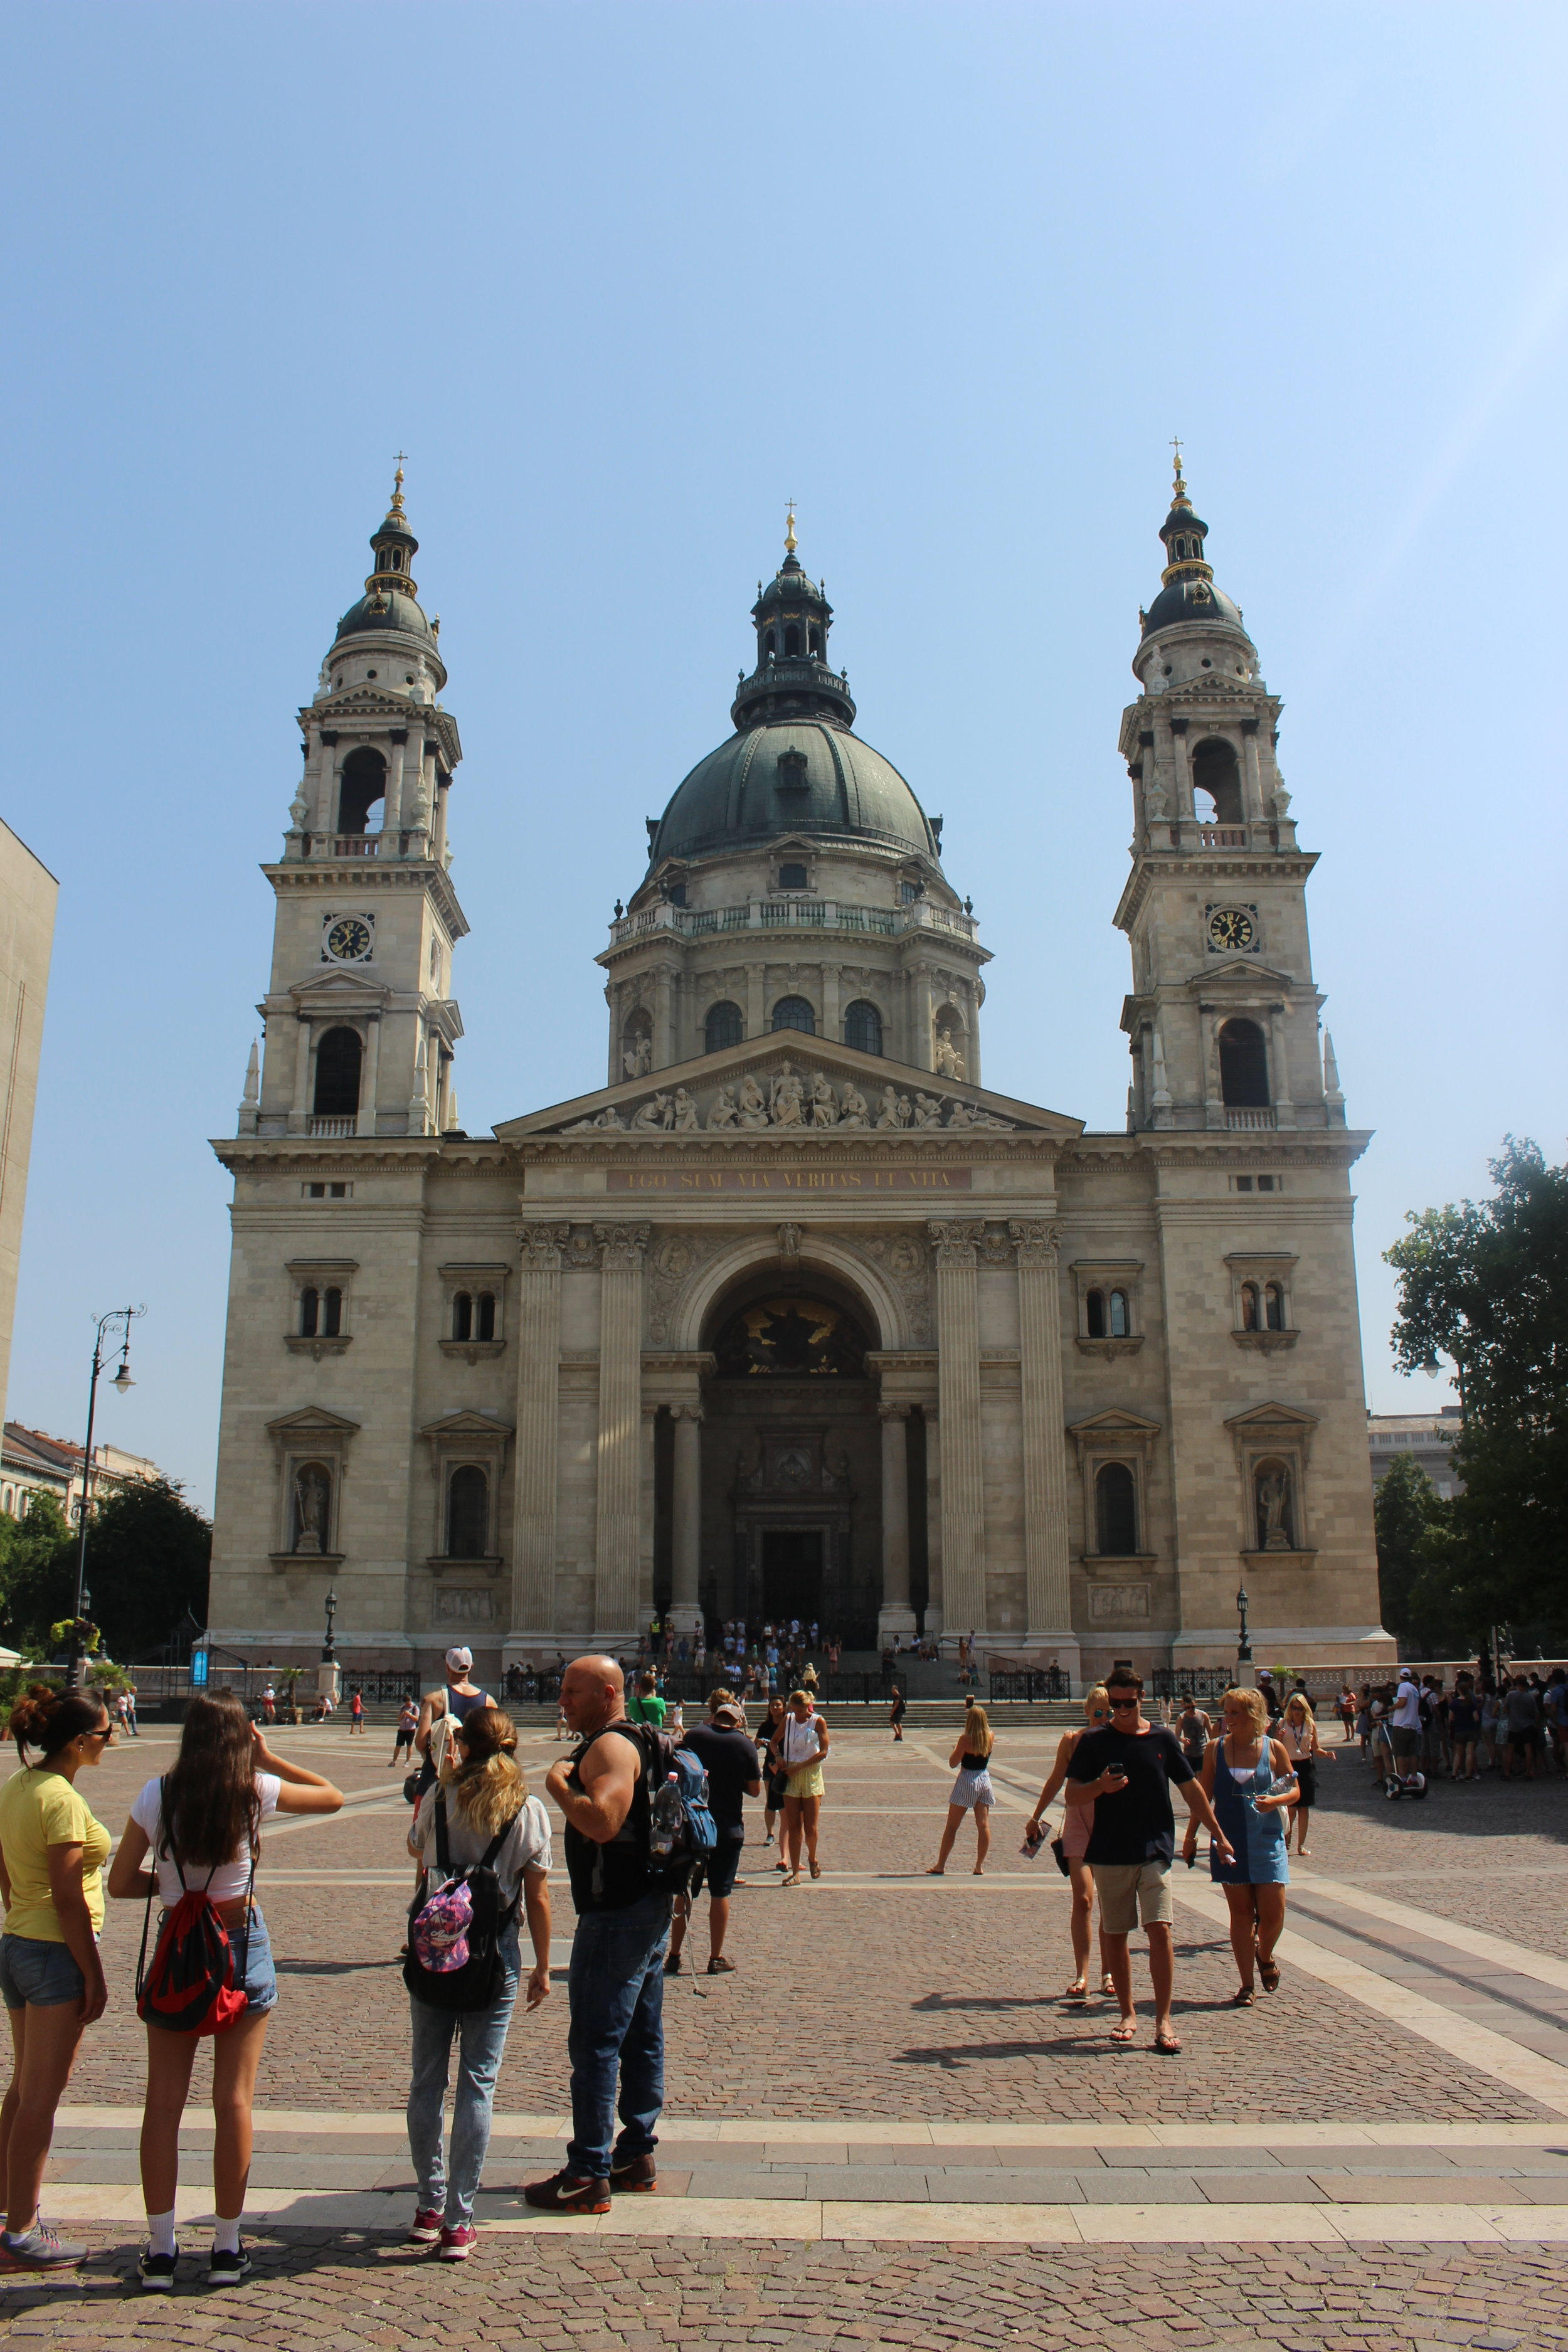 St. Stephen's Cathedral (Budapest, Hungary)